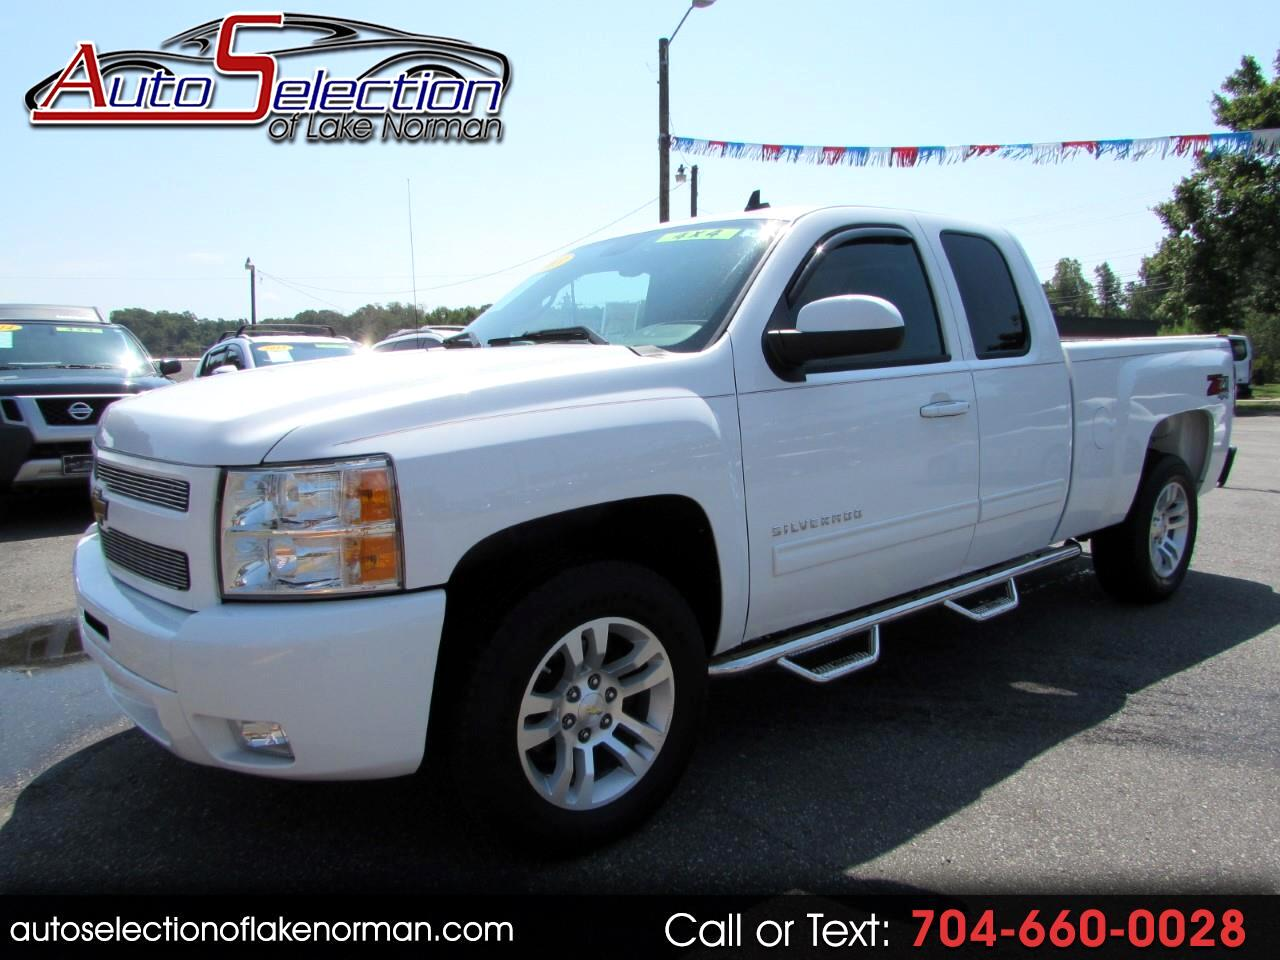 2013 Chevrolet Silverado 1500 LT Z71 Ext. Cab Long Box 4WD